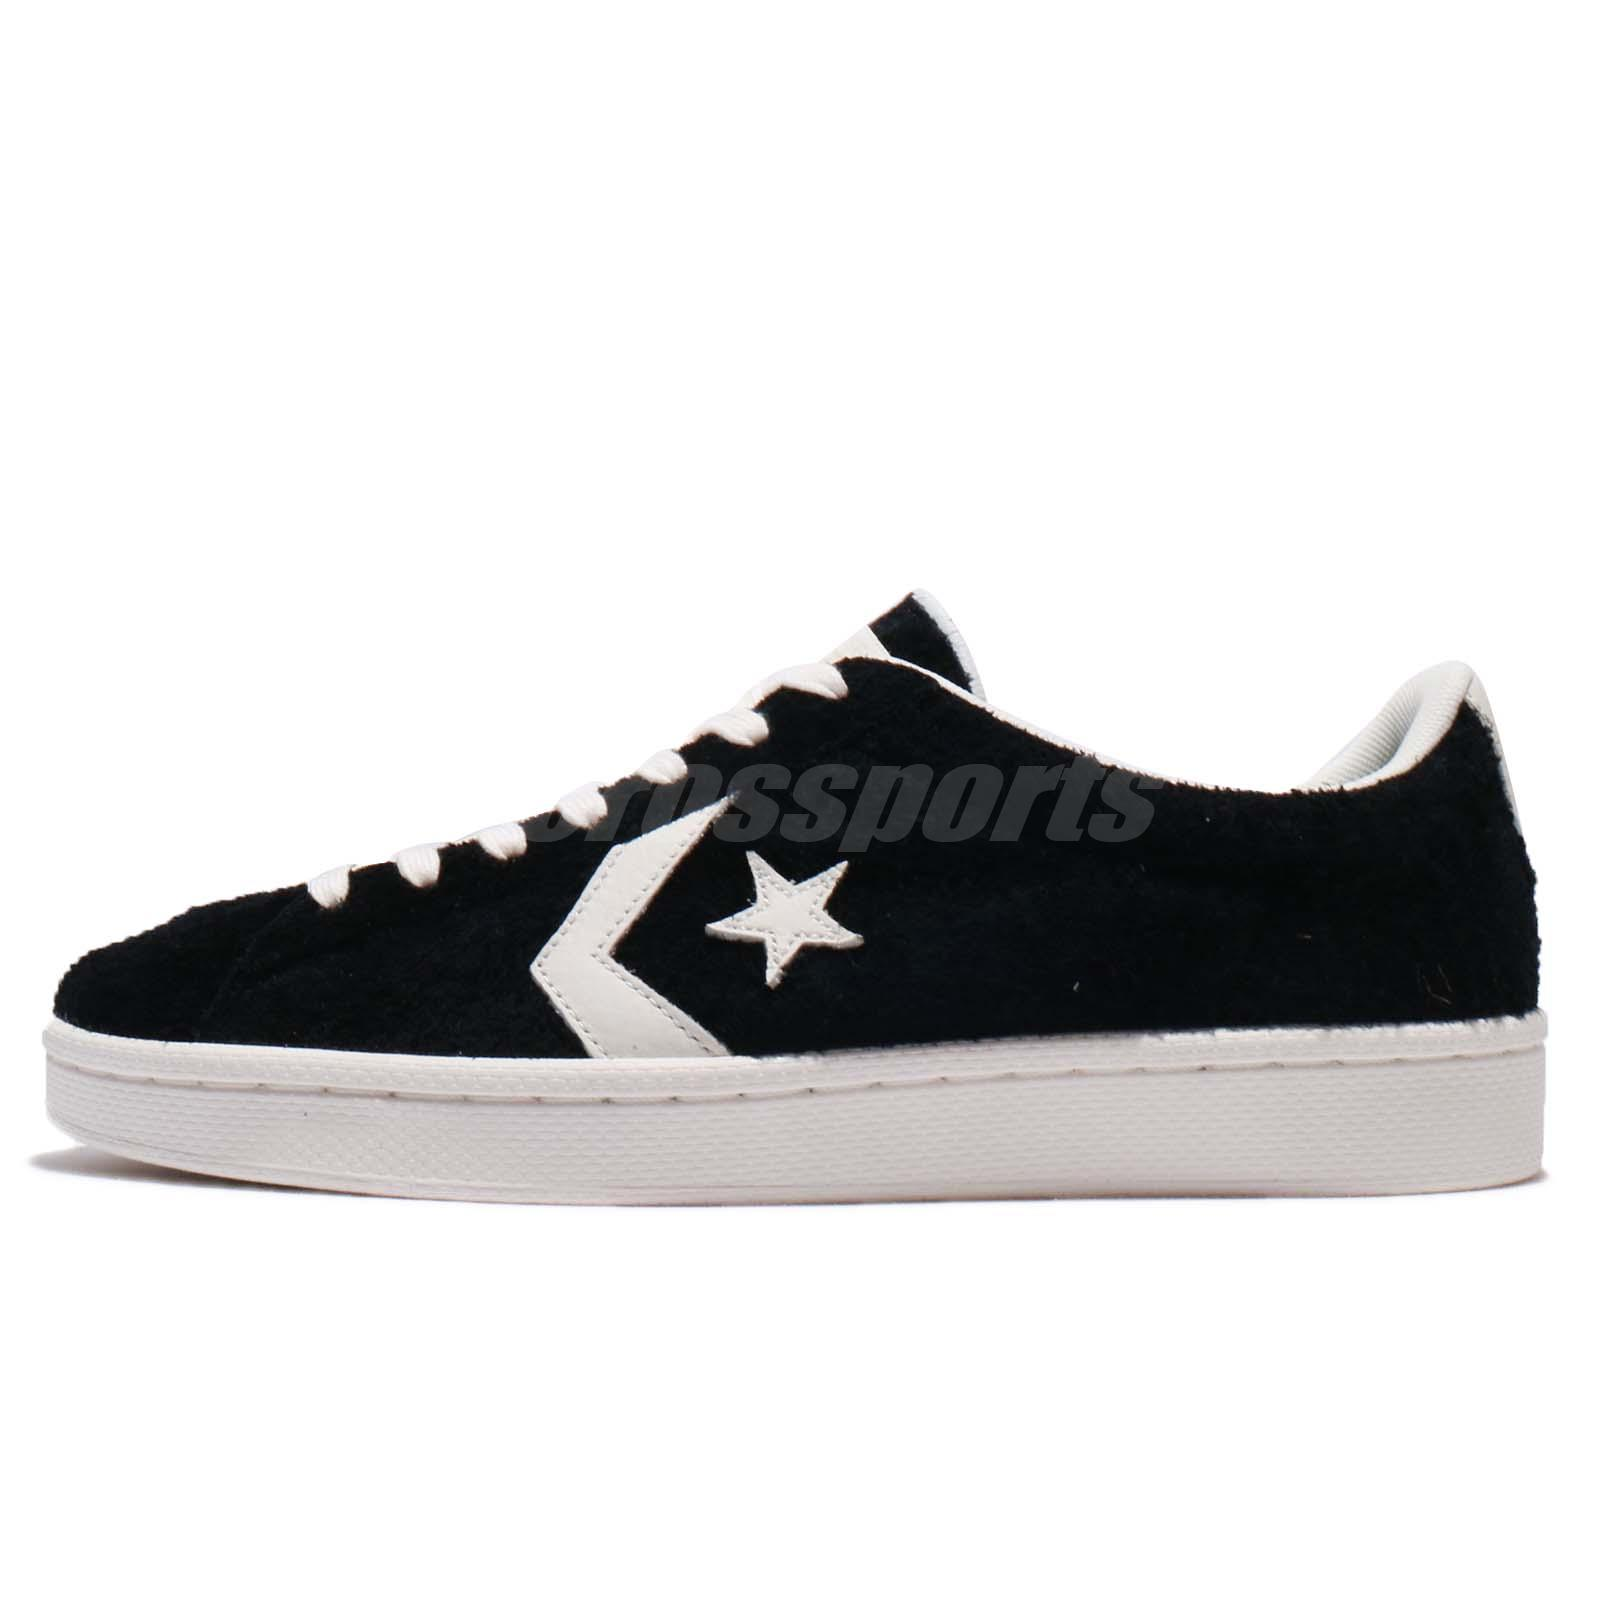 7881433f6962 Converse Pro Leather Low Black Ivory Suede Men Women Shoes Sneakers 157838C